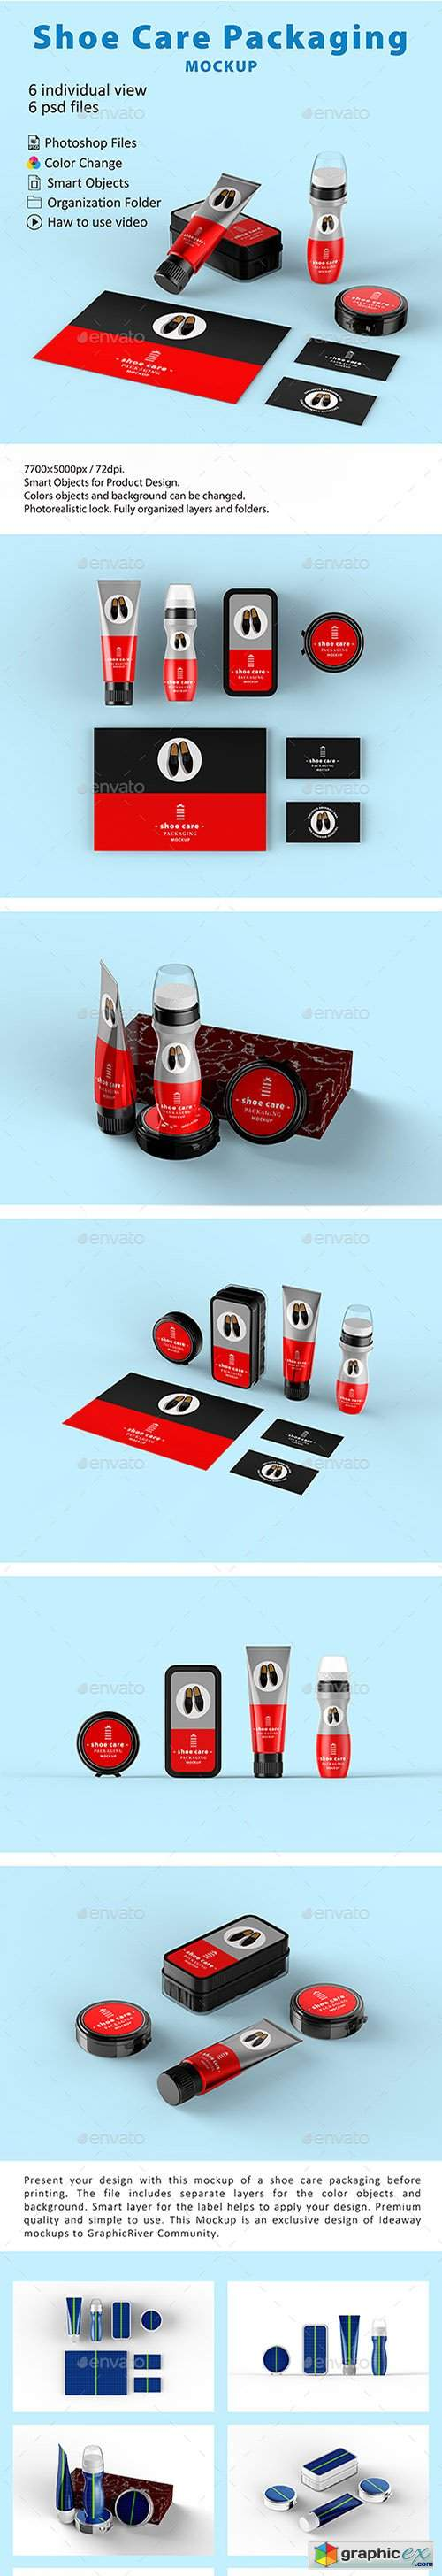 Shoe Care Packaging Mockup